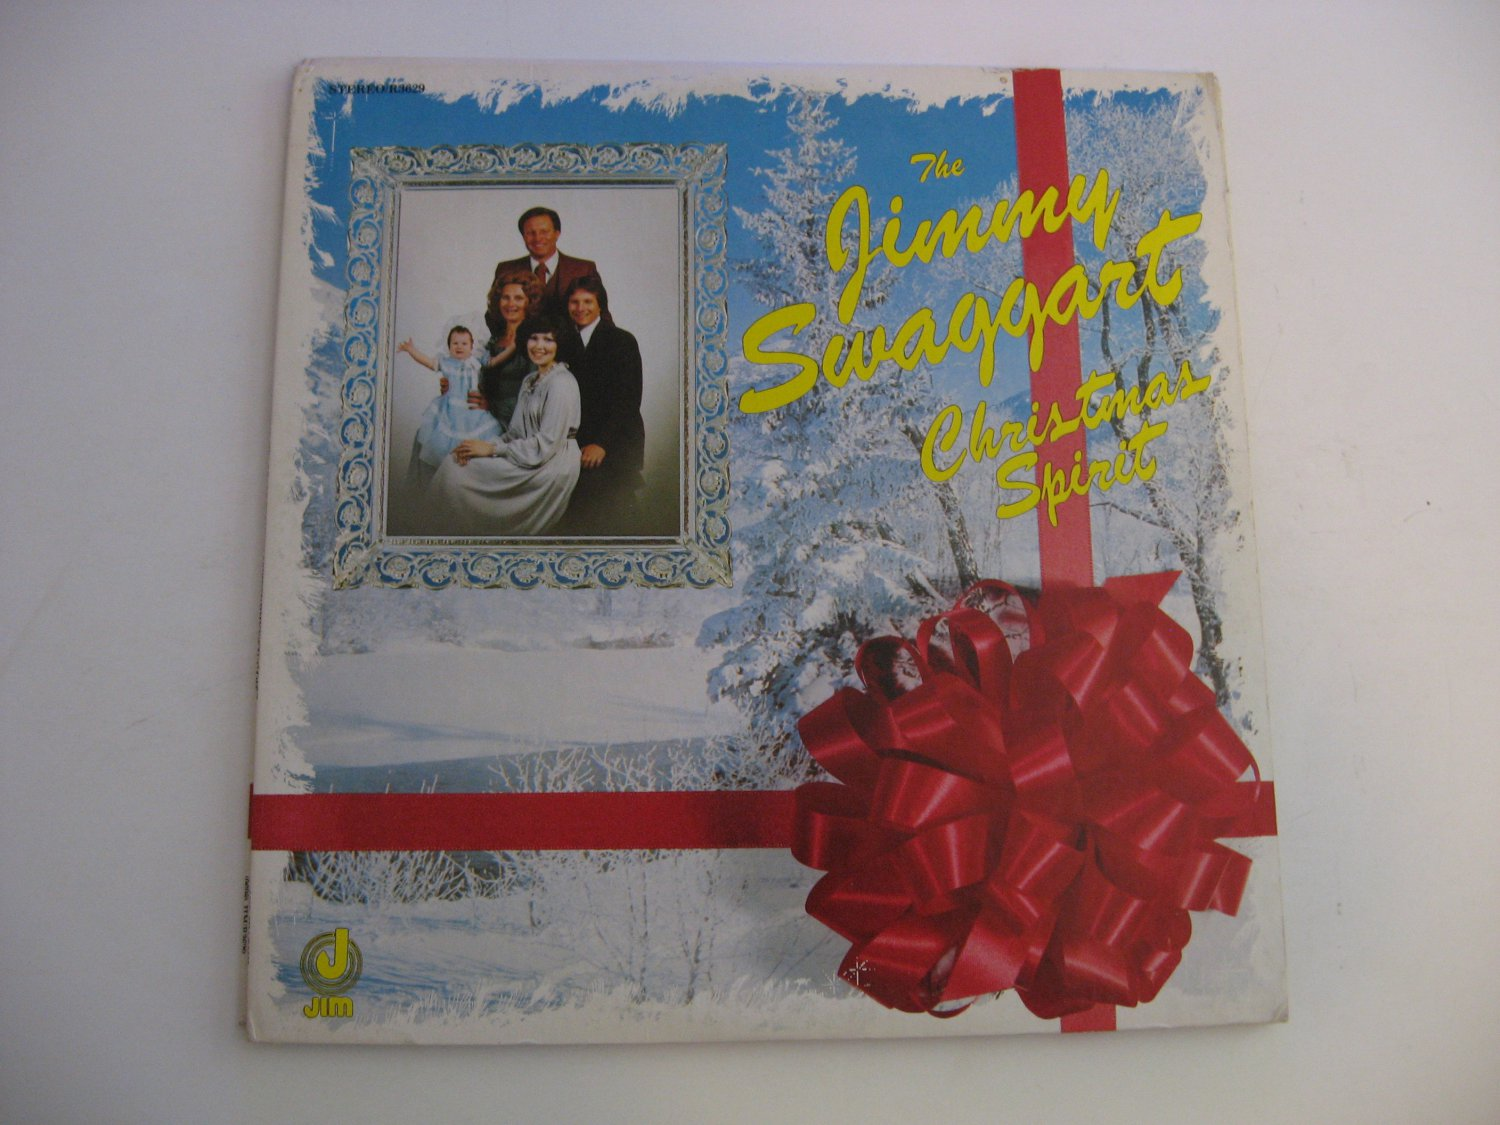 Jimmy Swaggart - The Christmas Strings Of Jimmy Swaggart - Circa 1978